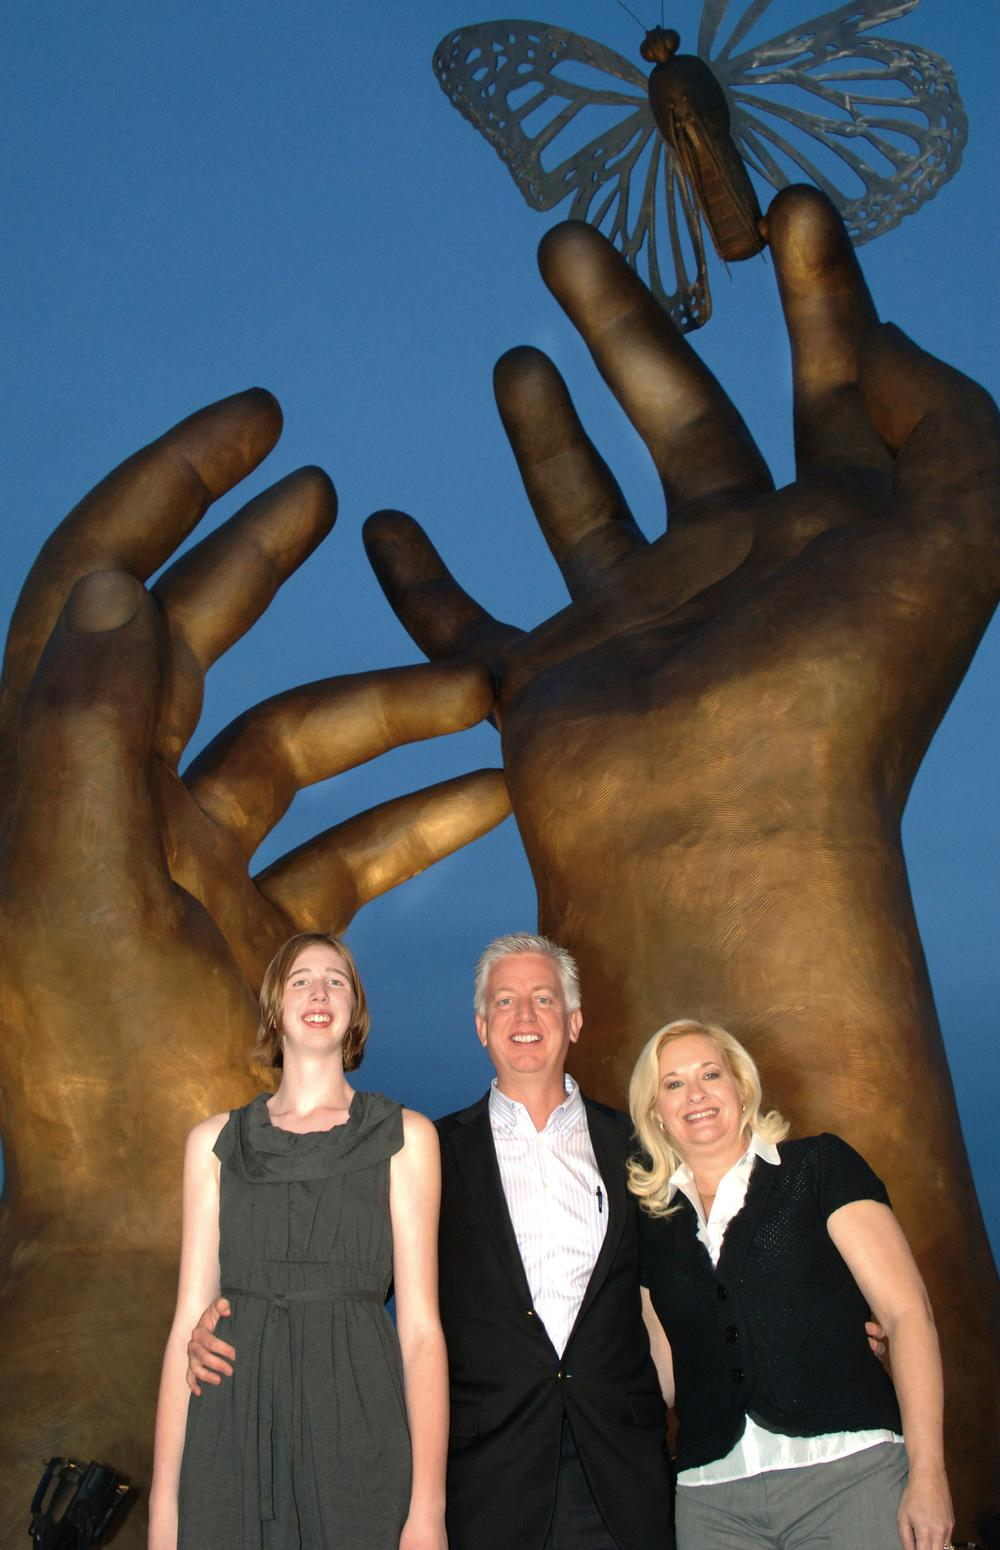 Morgan with her parents Gordon and Maggie